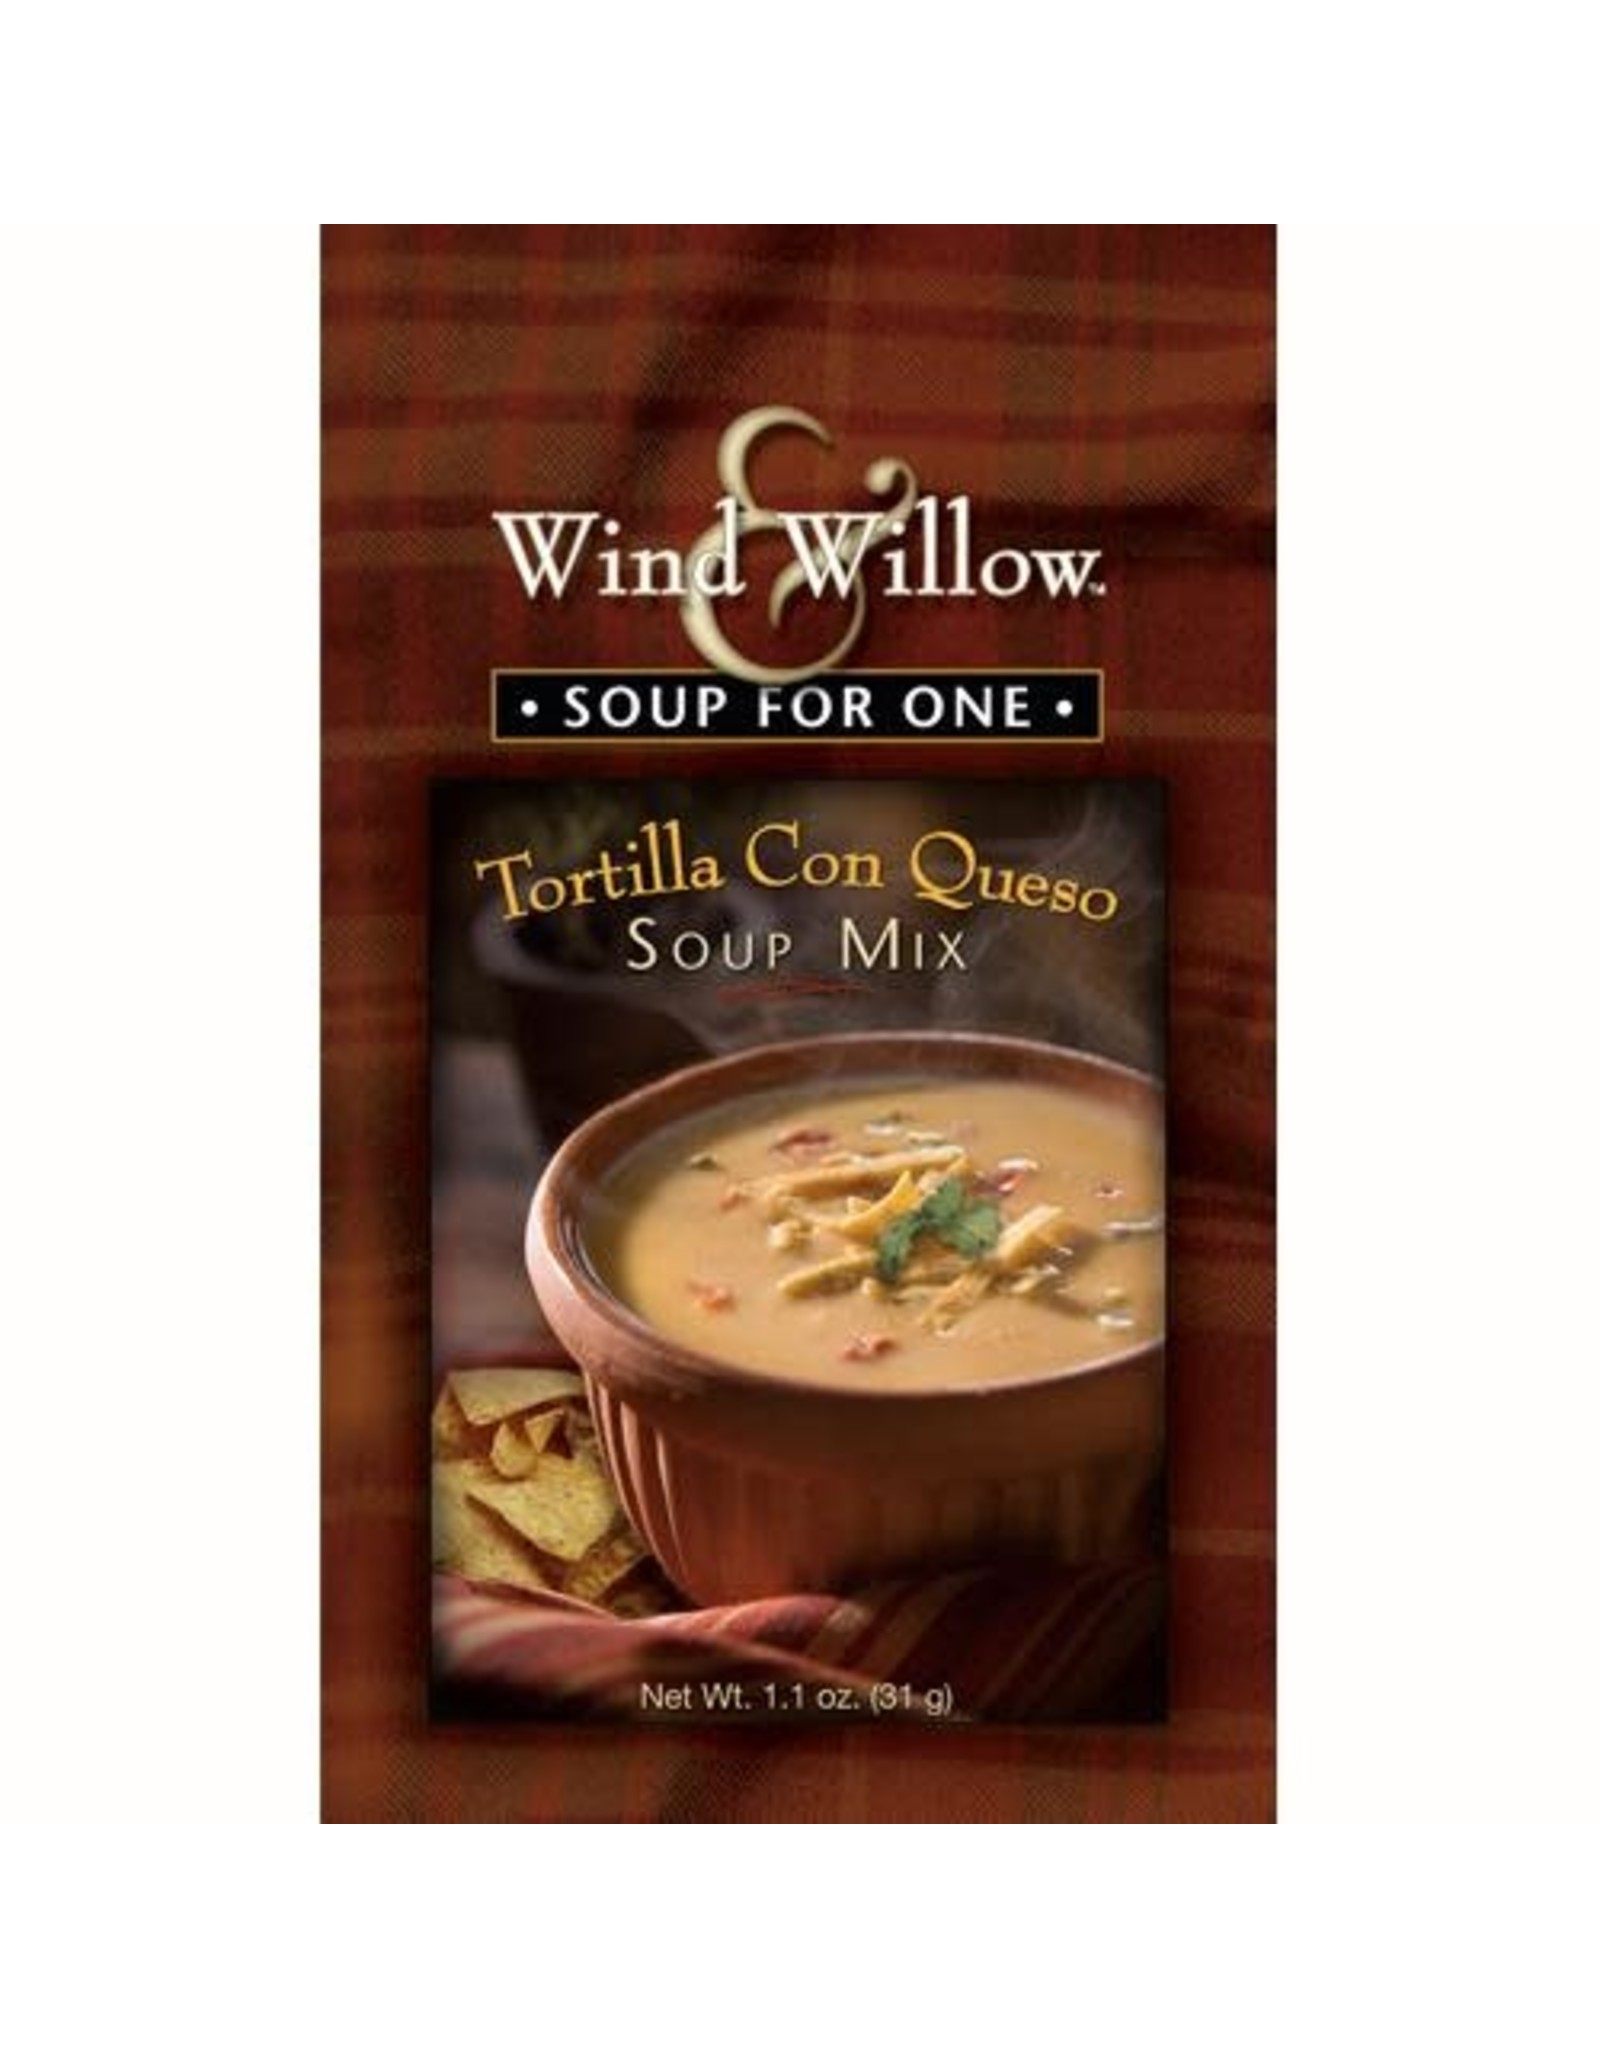 Wind & Willow Tortilla Con Queso Soup Mix, Individual, 1.1 oz